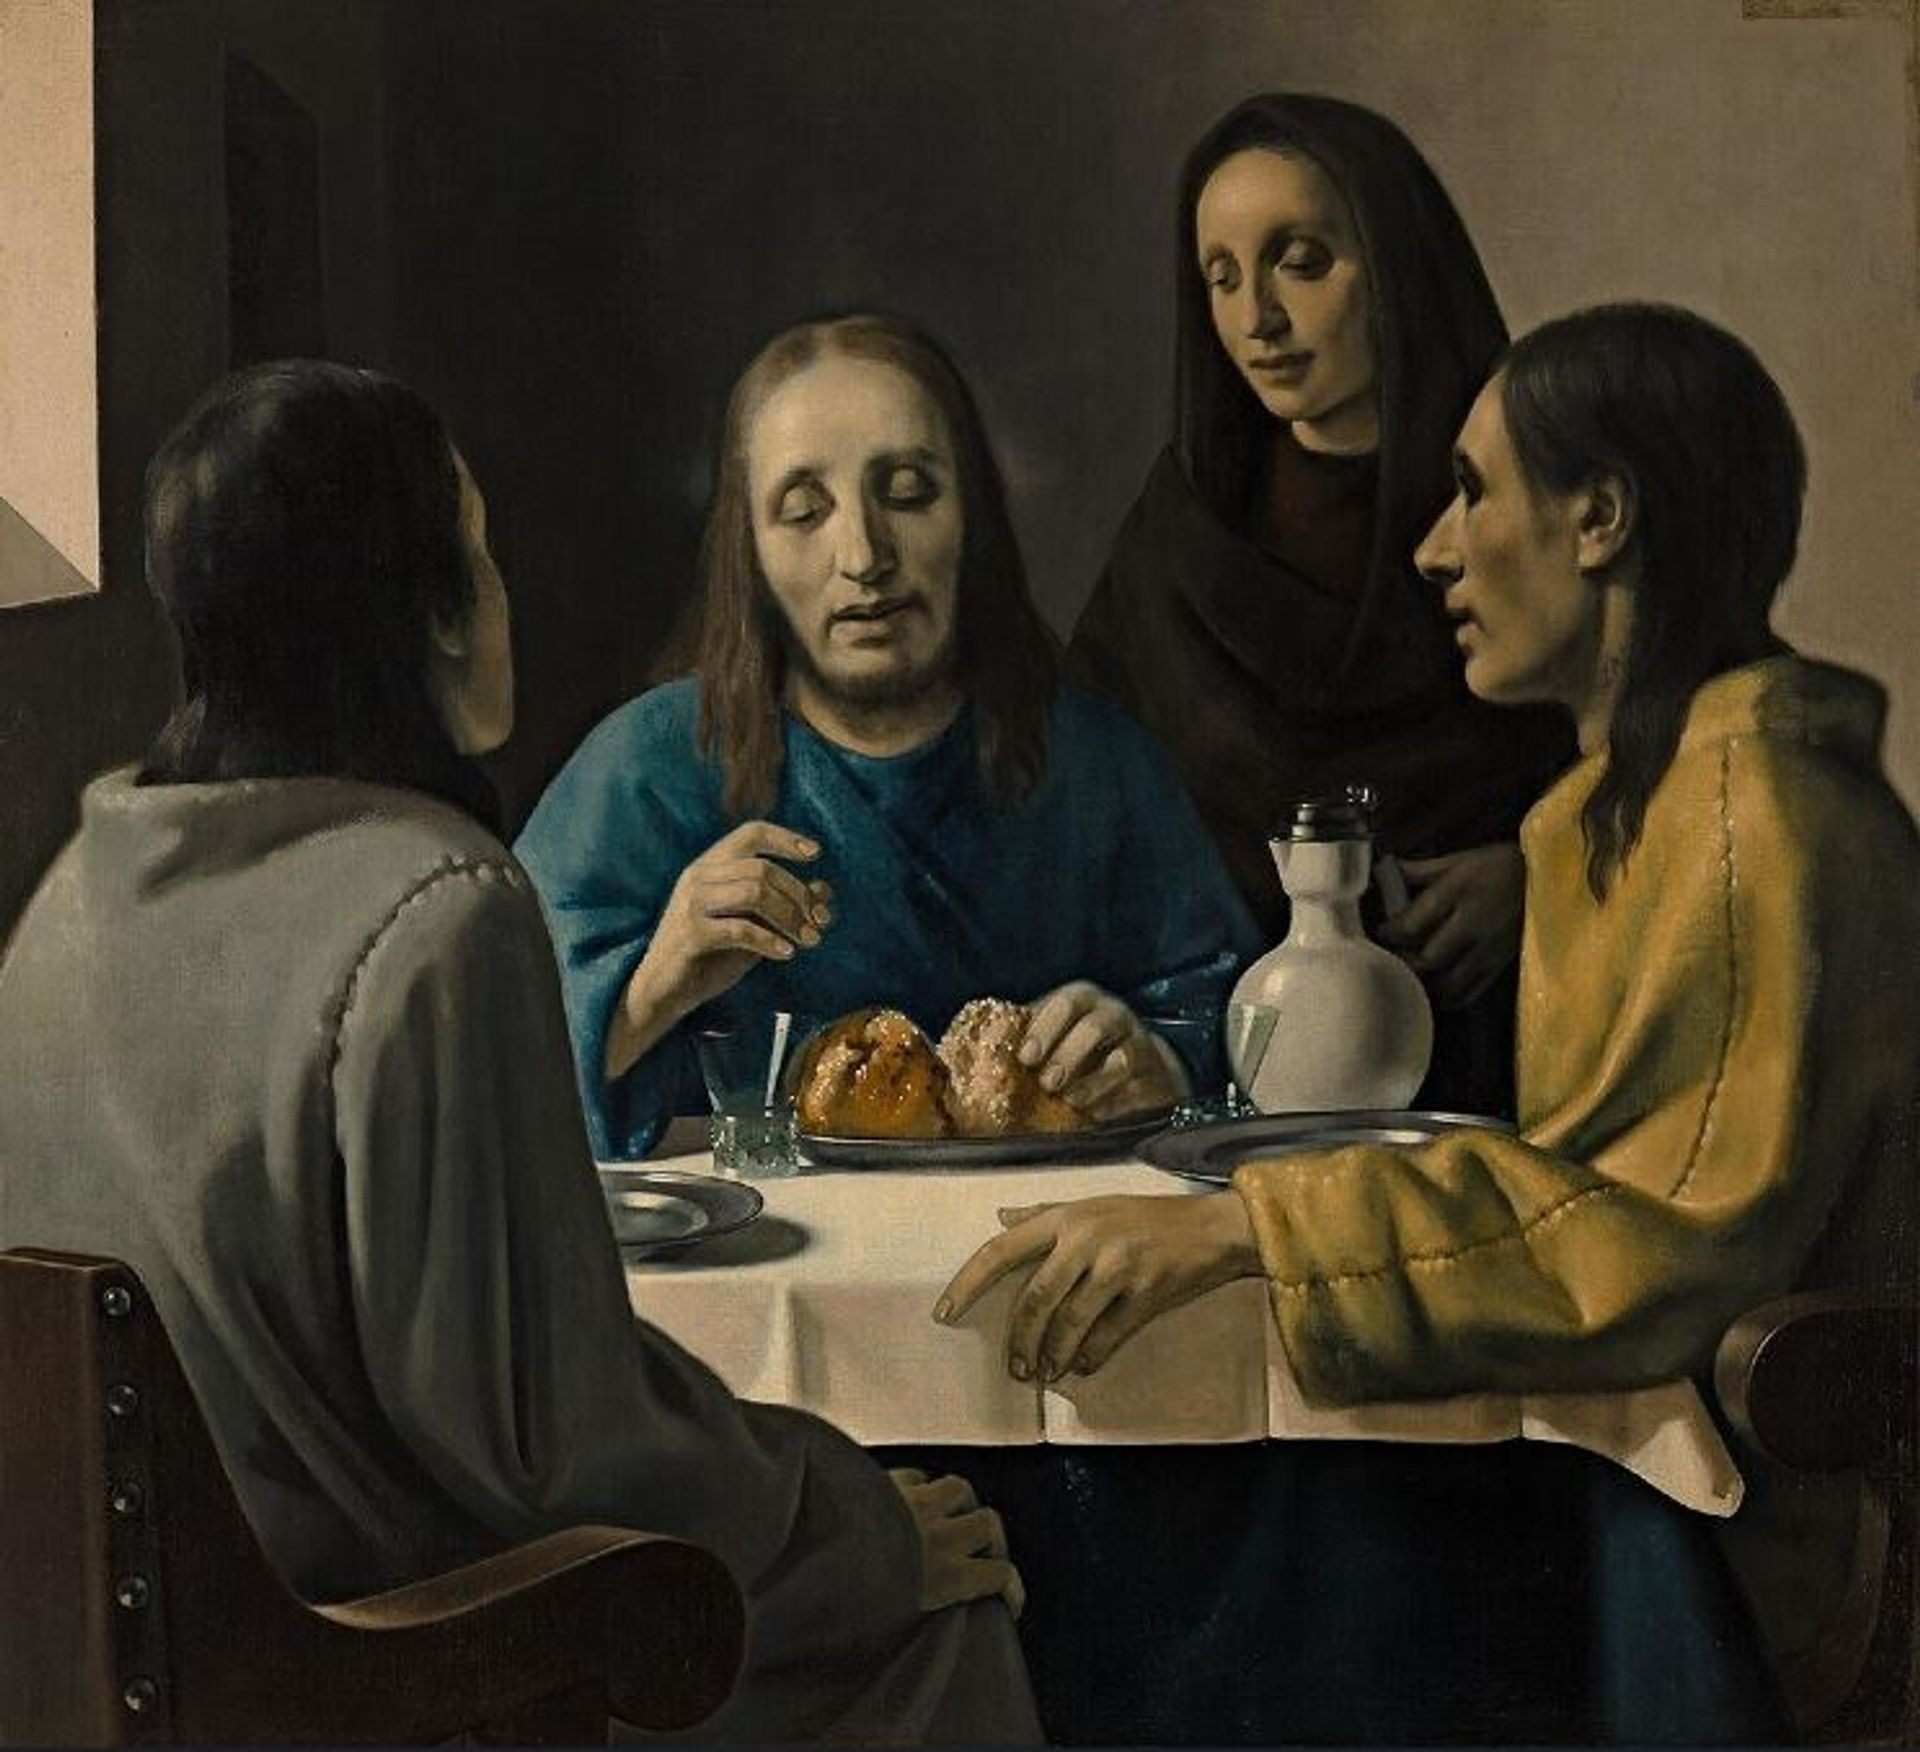 """Han van Meegeren's Christ at Emmaus """"is the most famous falsification in Dutch art history"""", according to the Museum Boijmans Van Beuningen's website.  The museum bought the """"Vermeer"""" in 1937 and only learned it was a fake after Second World War Museum Boijmans Van Beuningen"""